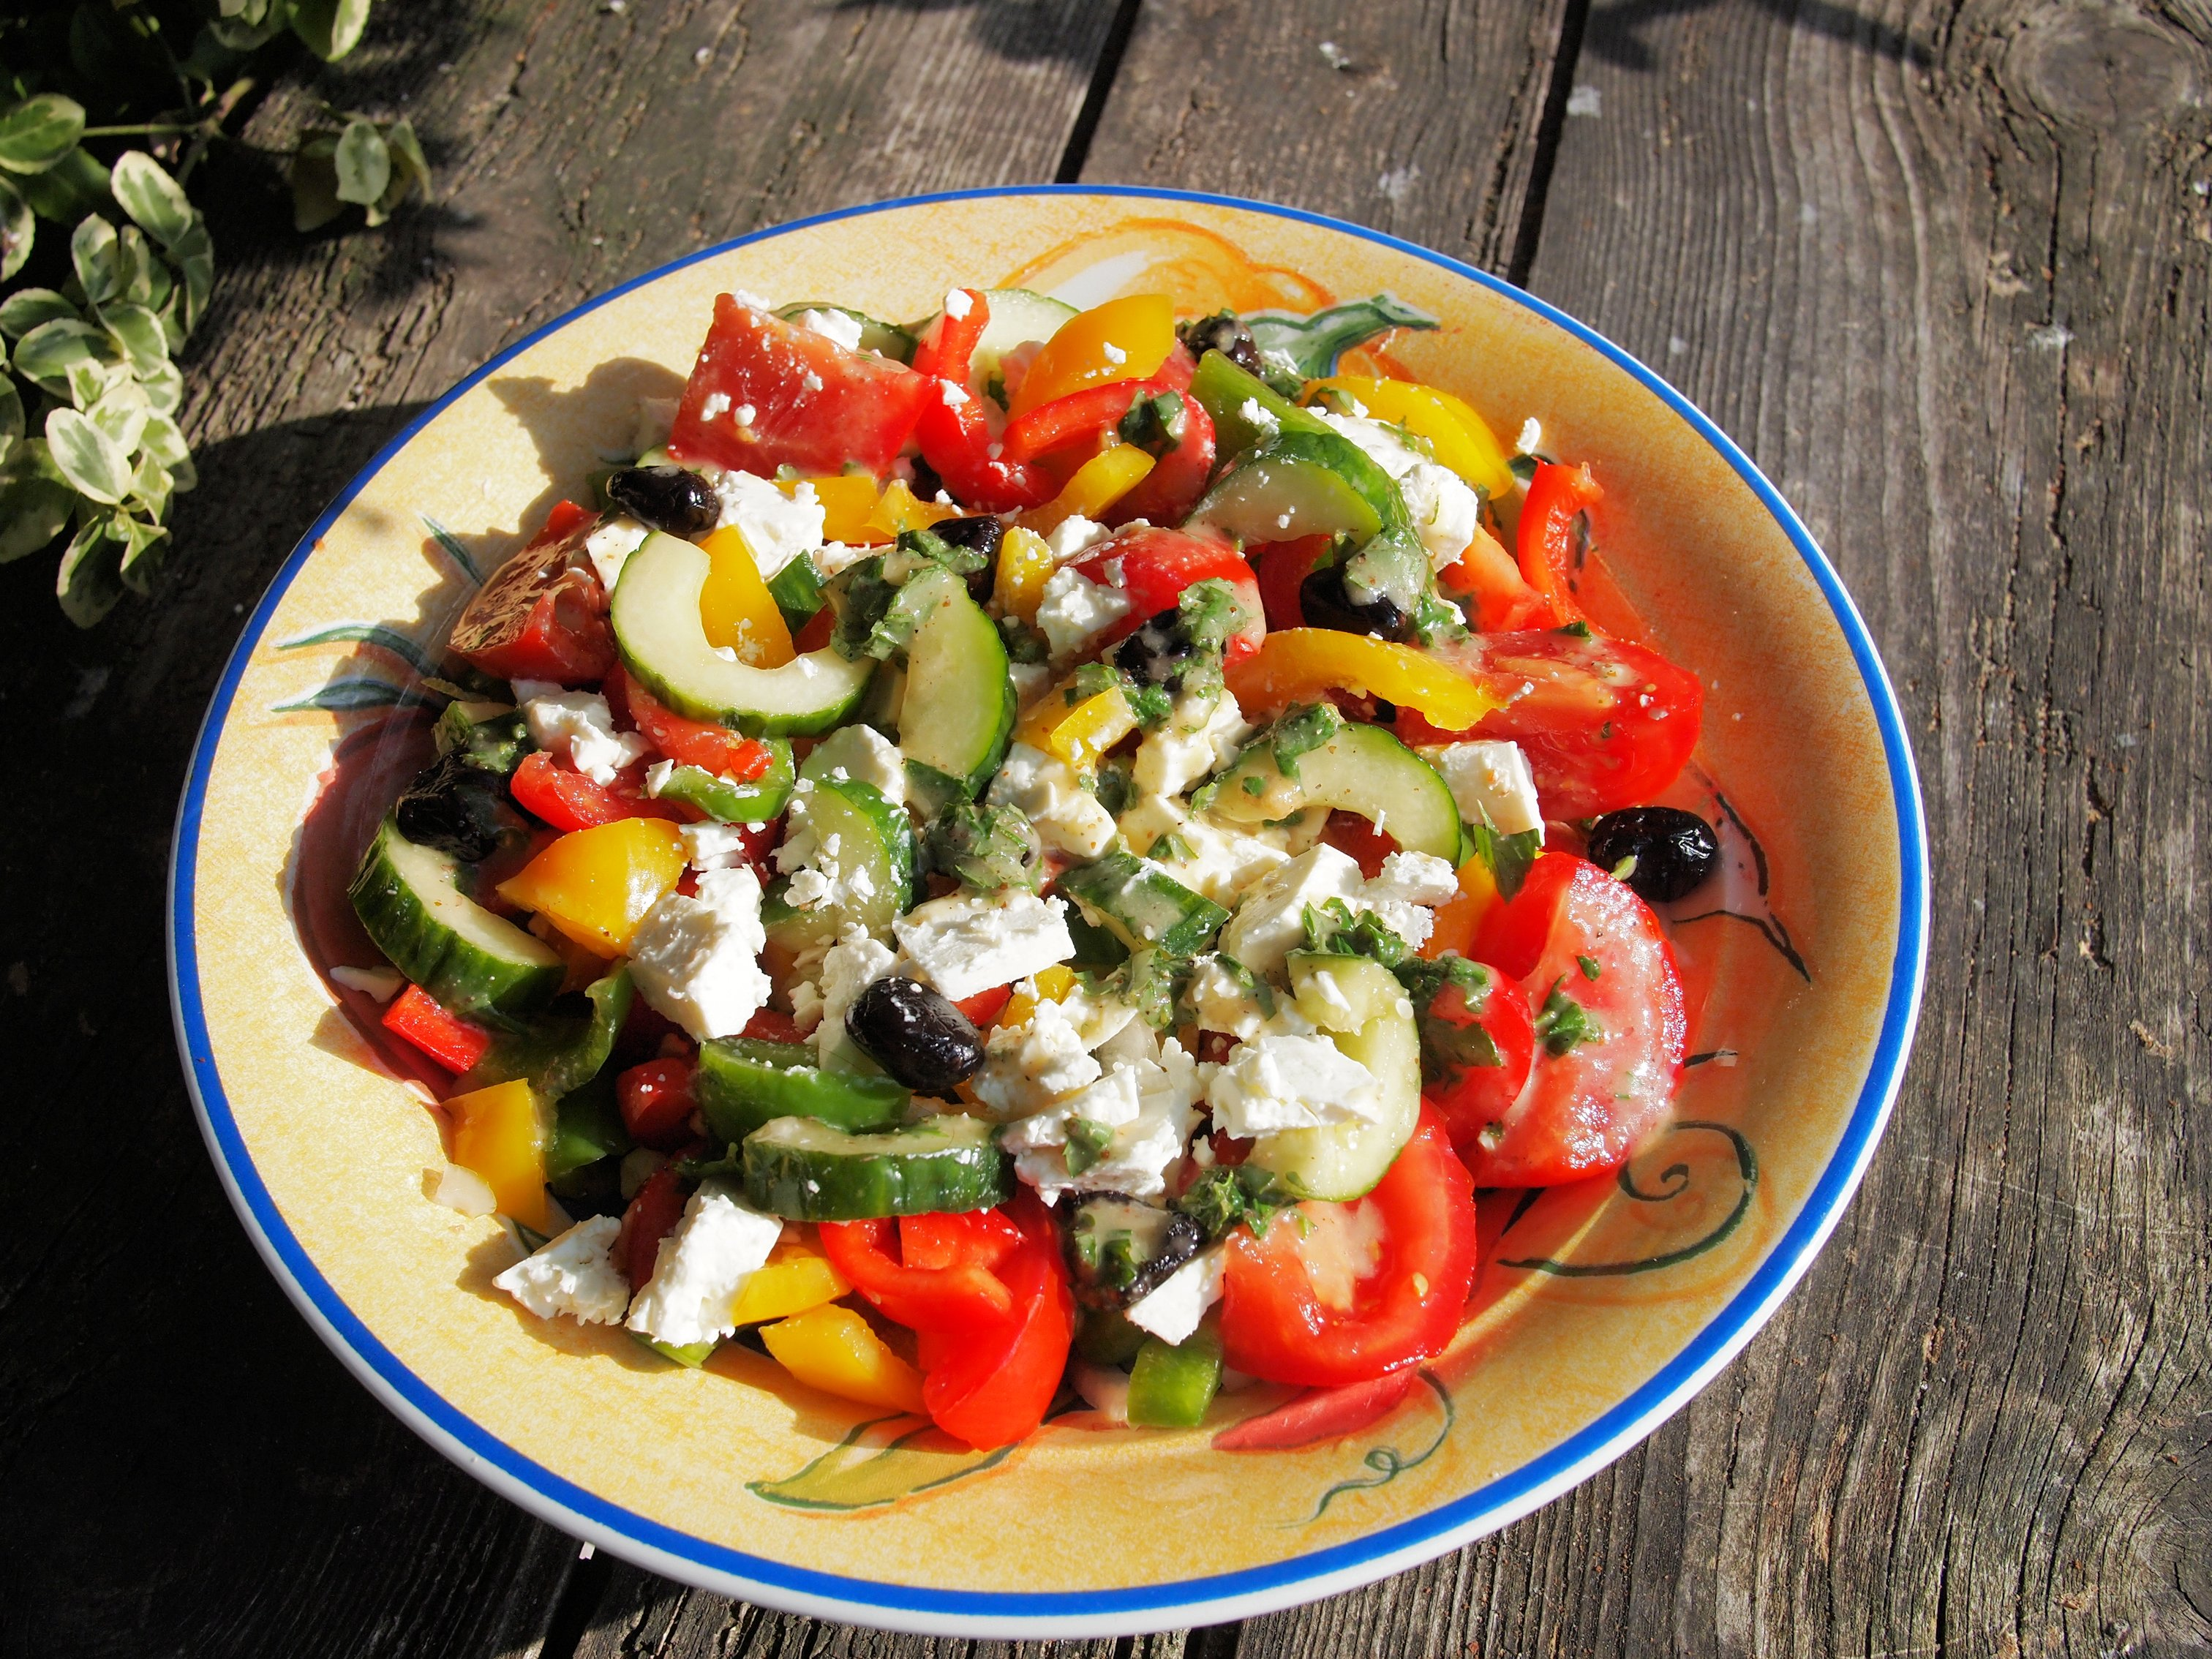 A new 5 2 diet fast day recipe greek lunch box salad for Salas lunchs